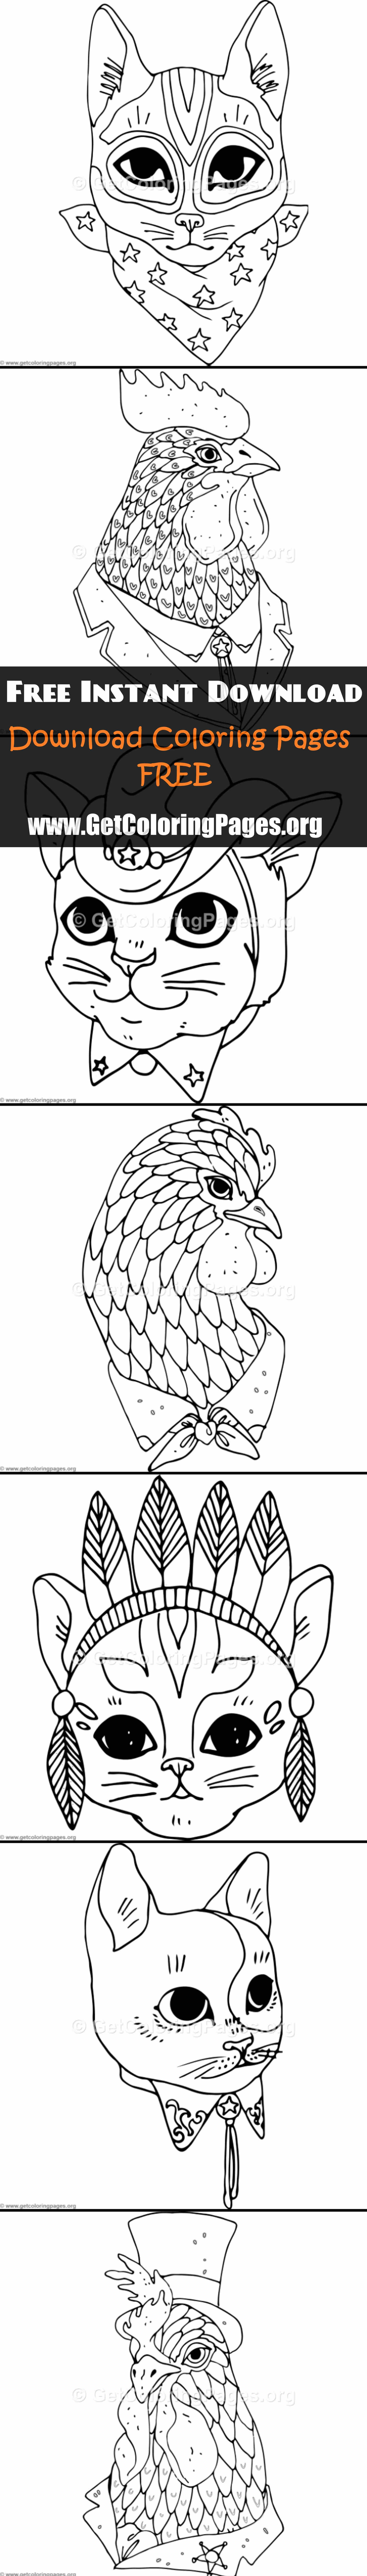 animal coloring pages,animal coloring pages for adults,animal ...